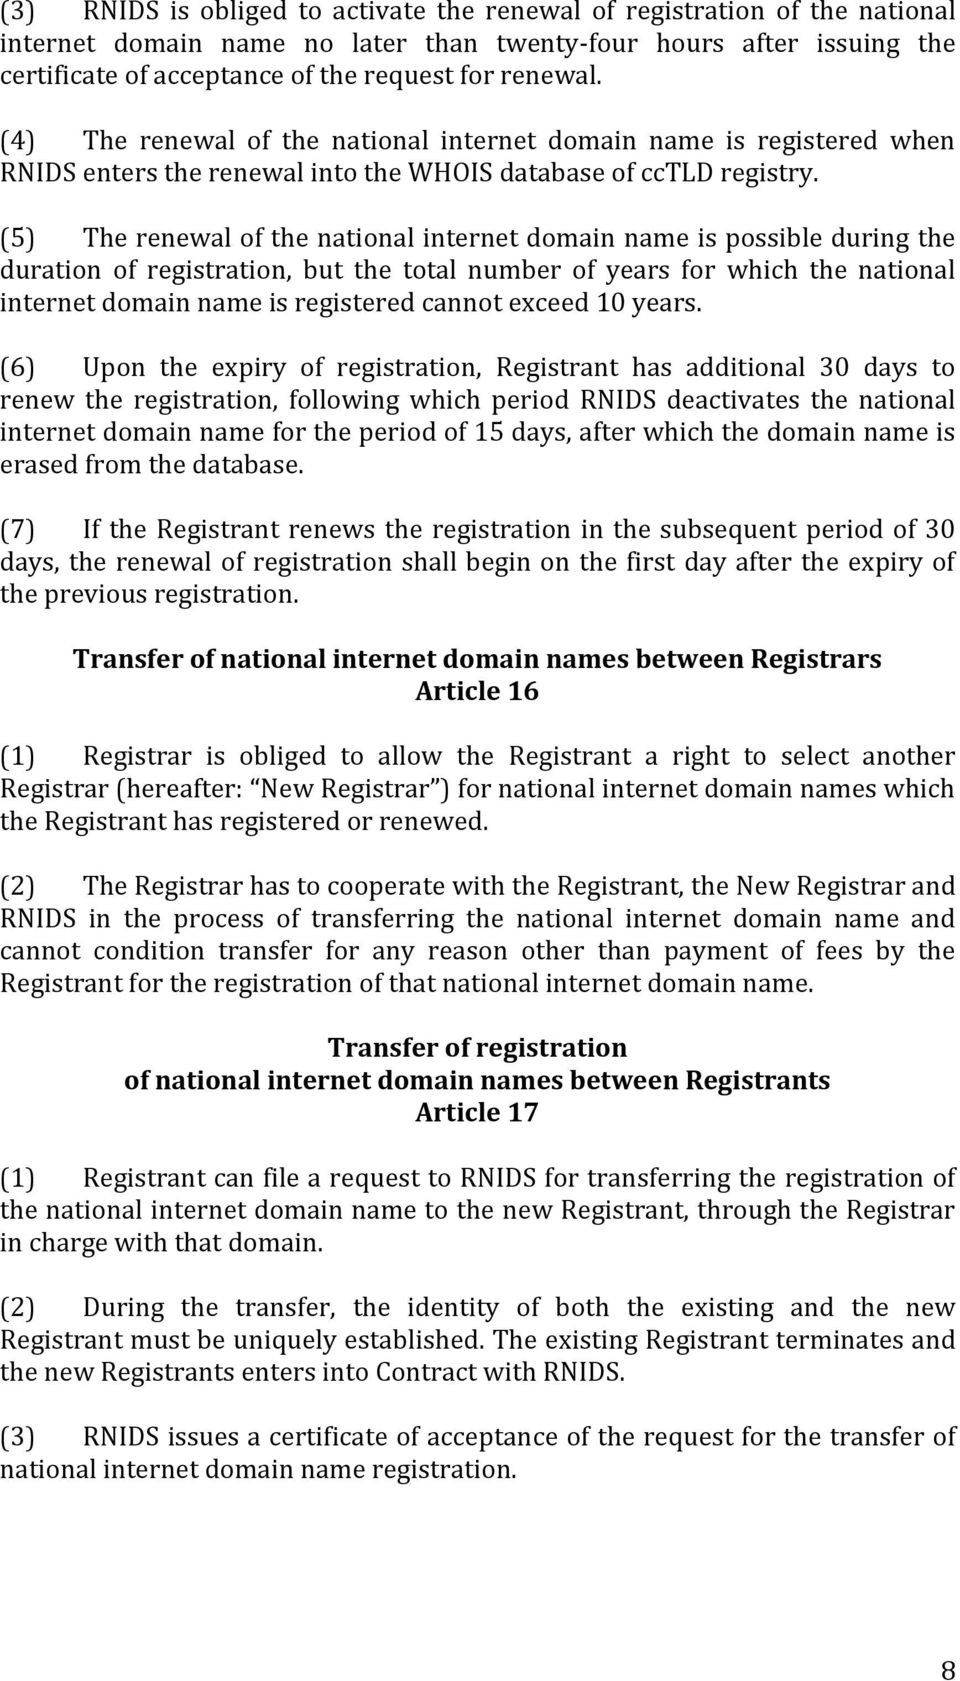 (5) The renewal of the national internet domain name is possible during the duration of registration, but the total number of years for which the national internet domain name is registered cannot